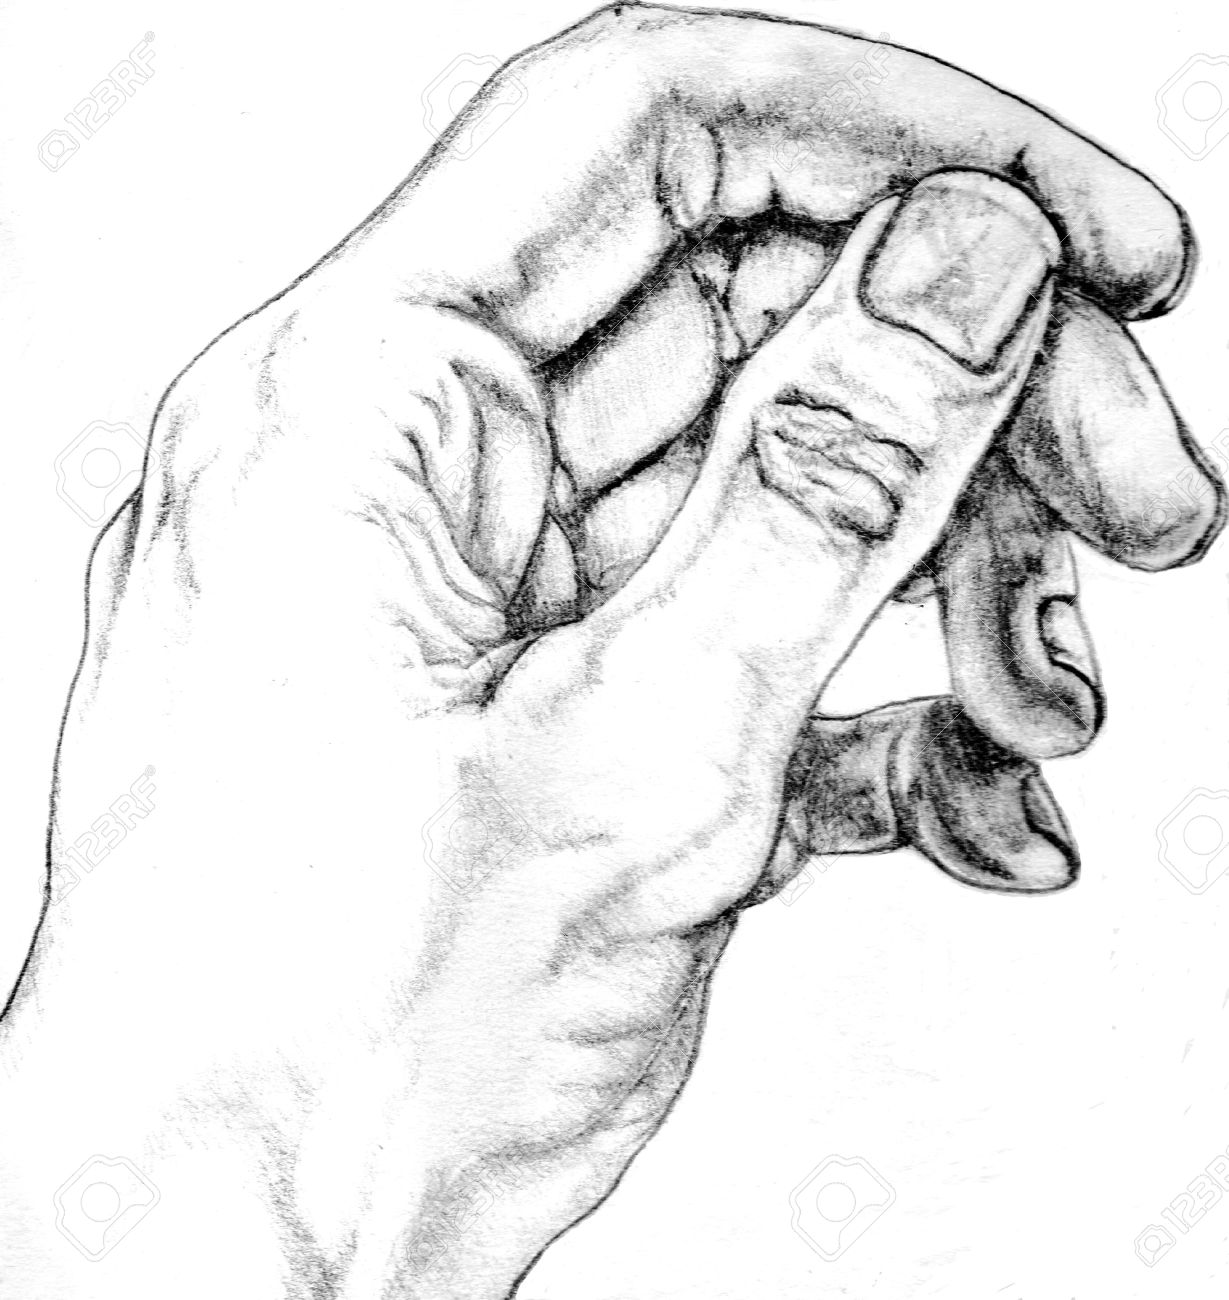 Pencil drawing of man s hand original artwork by contributor stock photo 22990098